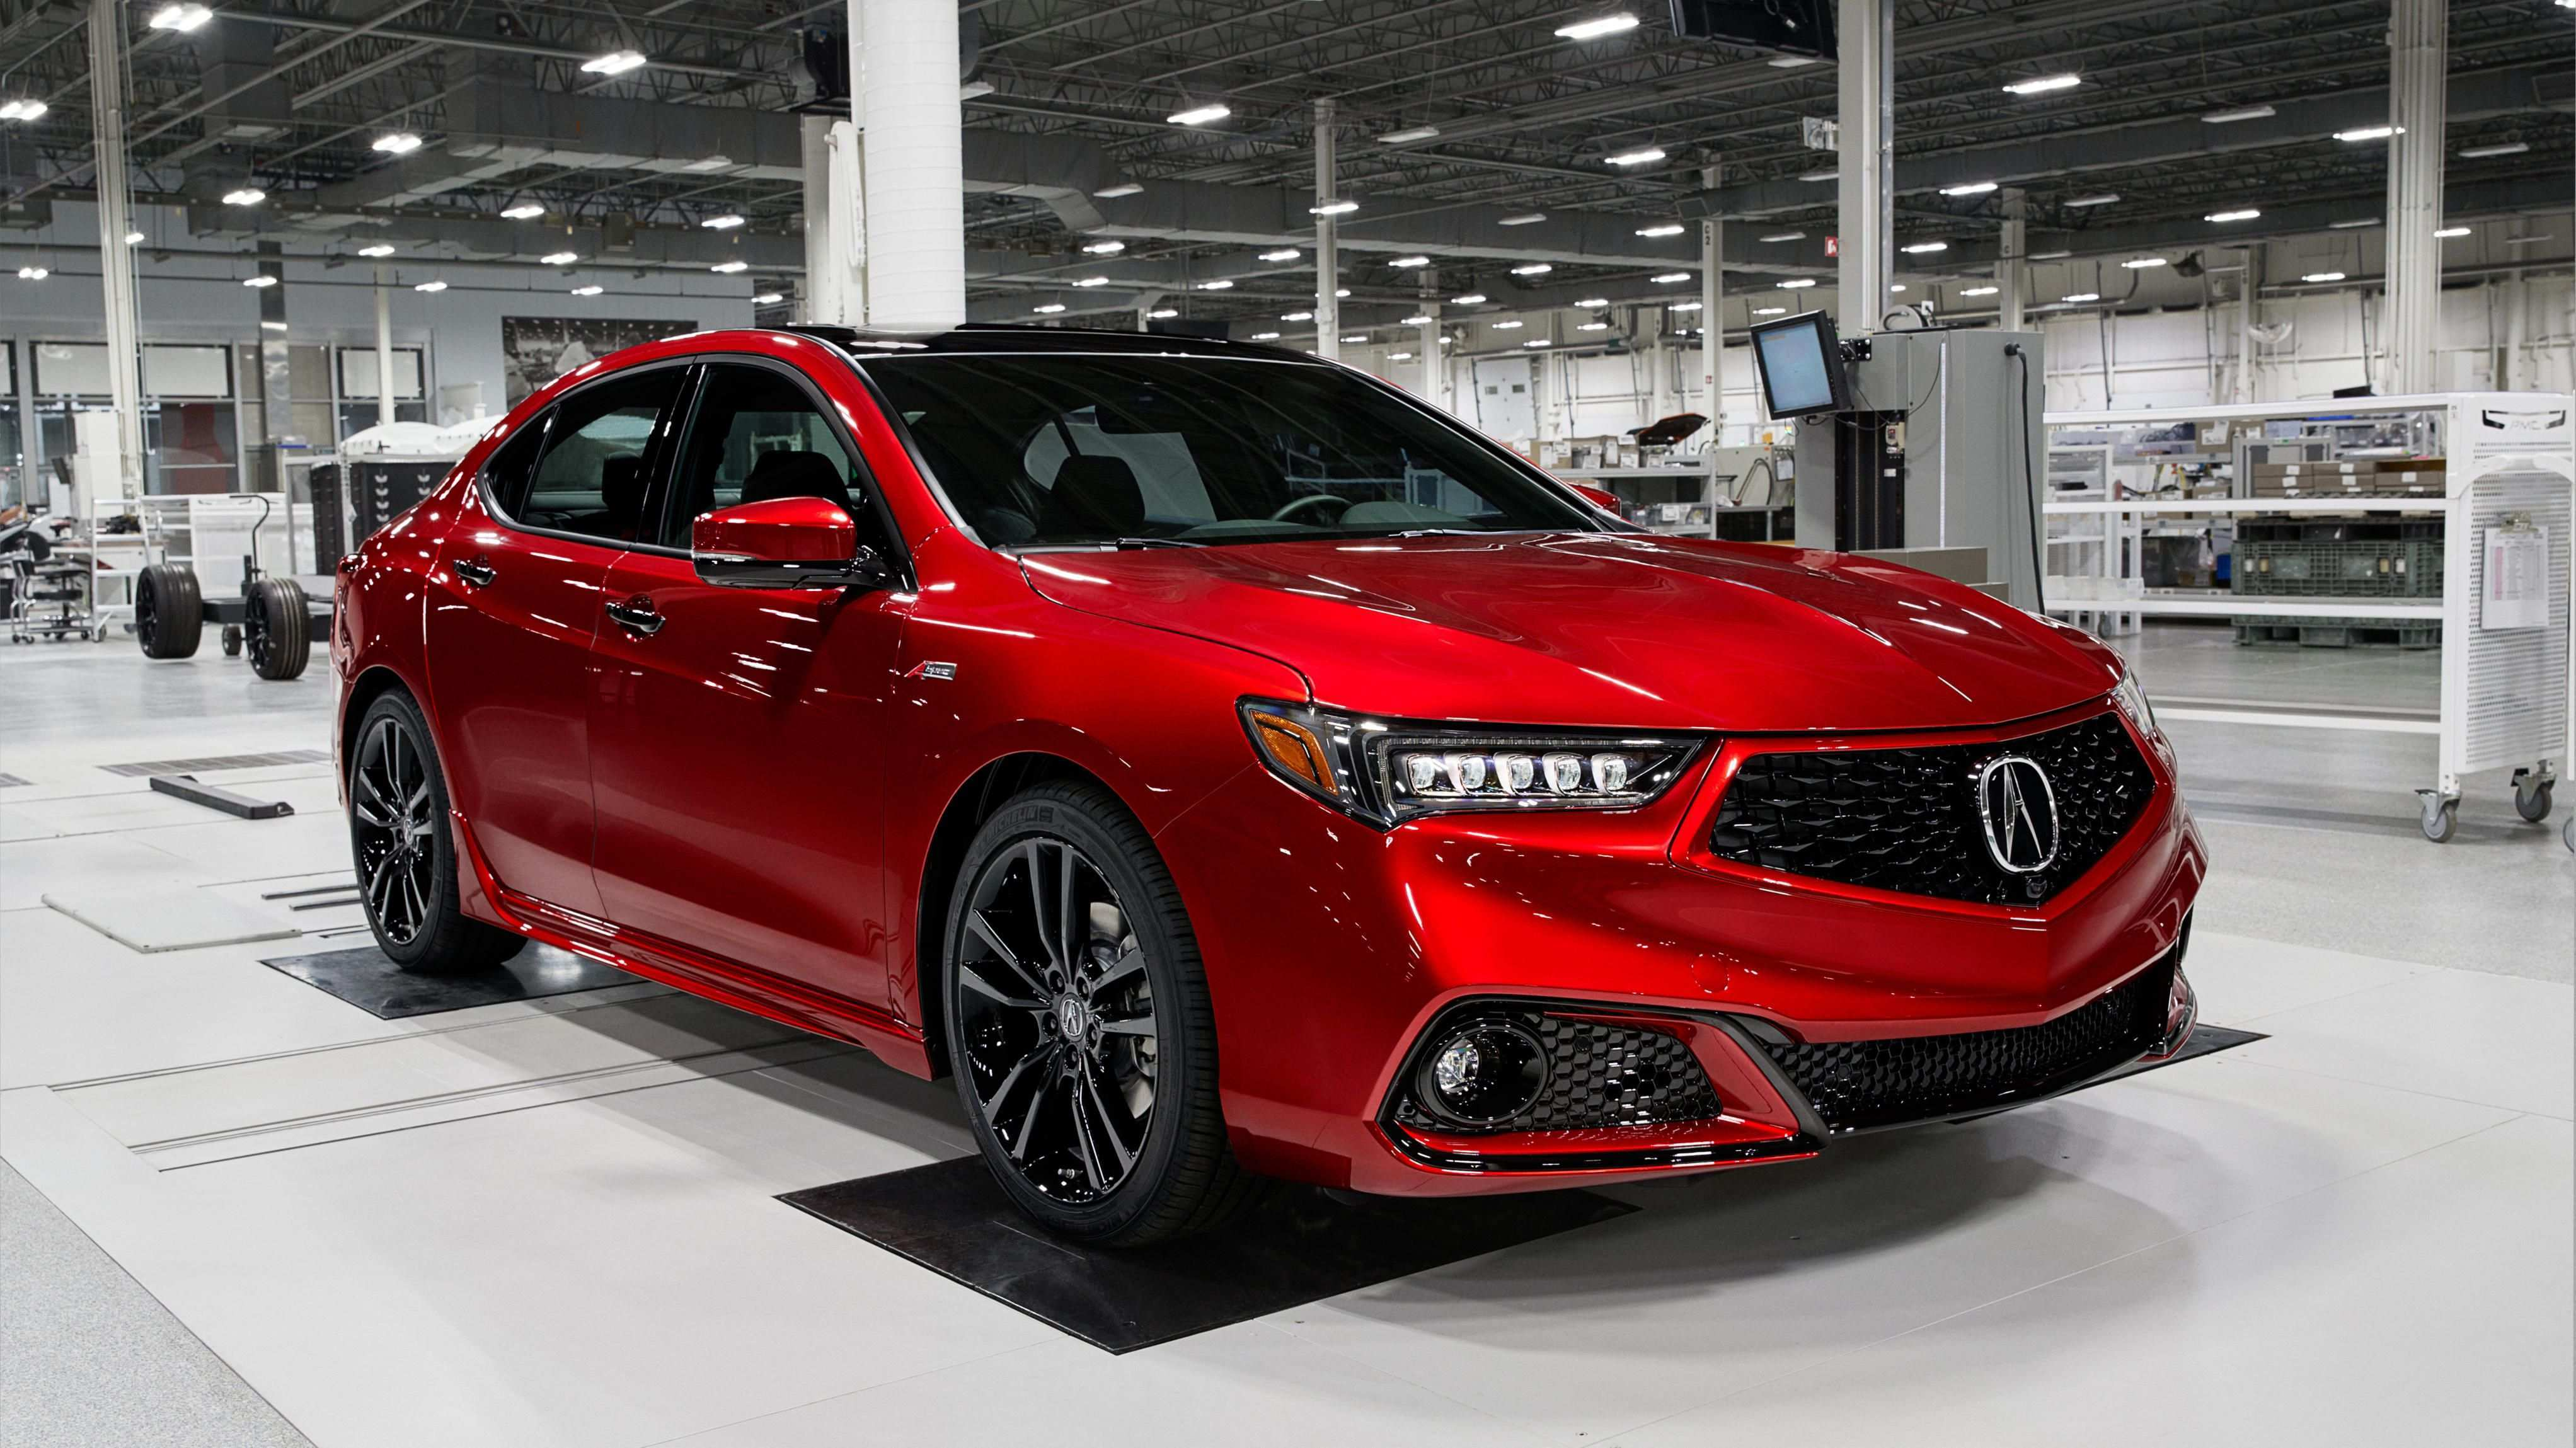 82 New 2020 Acura Tlx Pmc Edition Specs Redesign for 2020 Acura Tlx Pmc Edition Specs